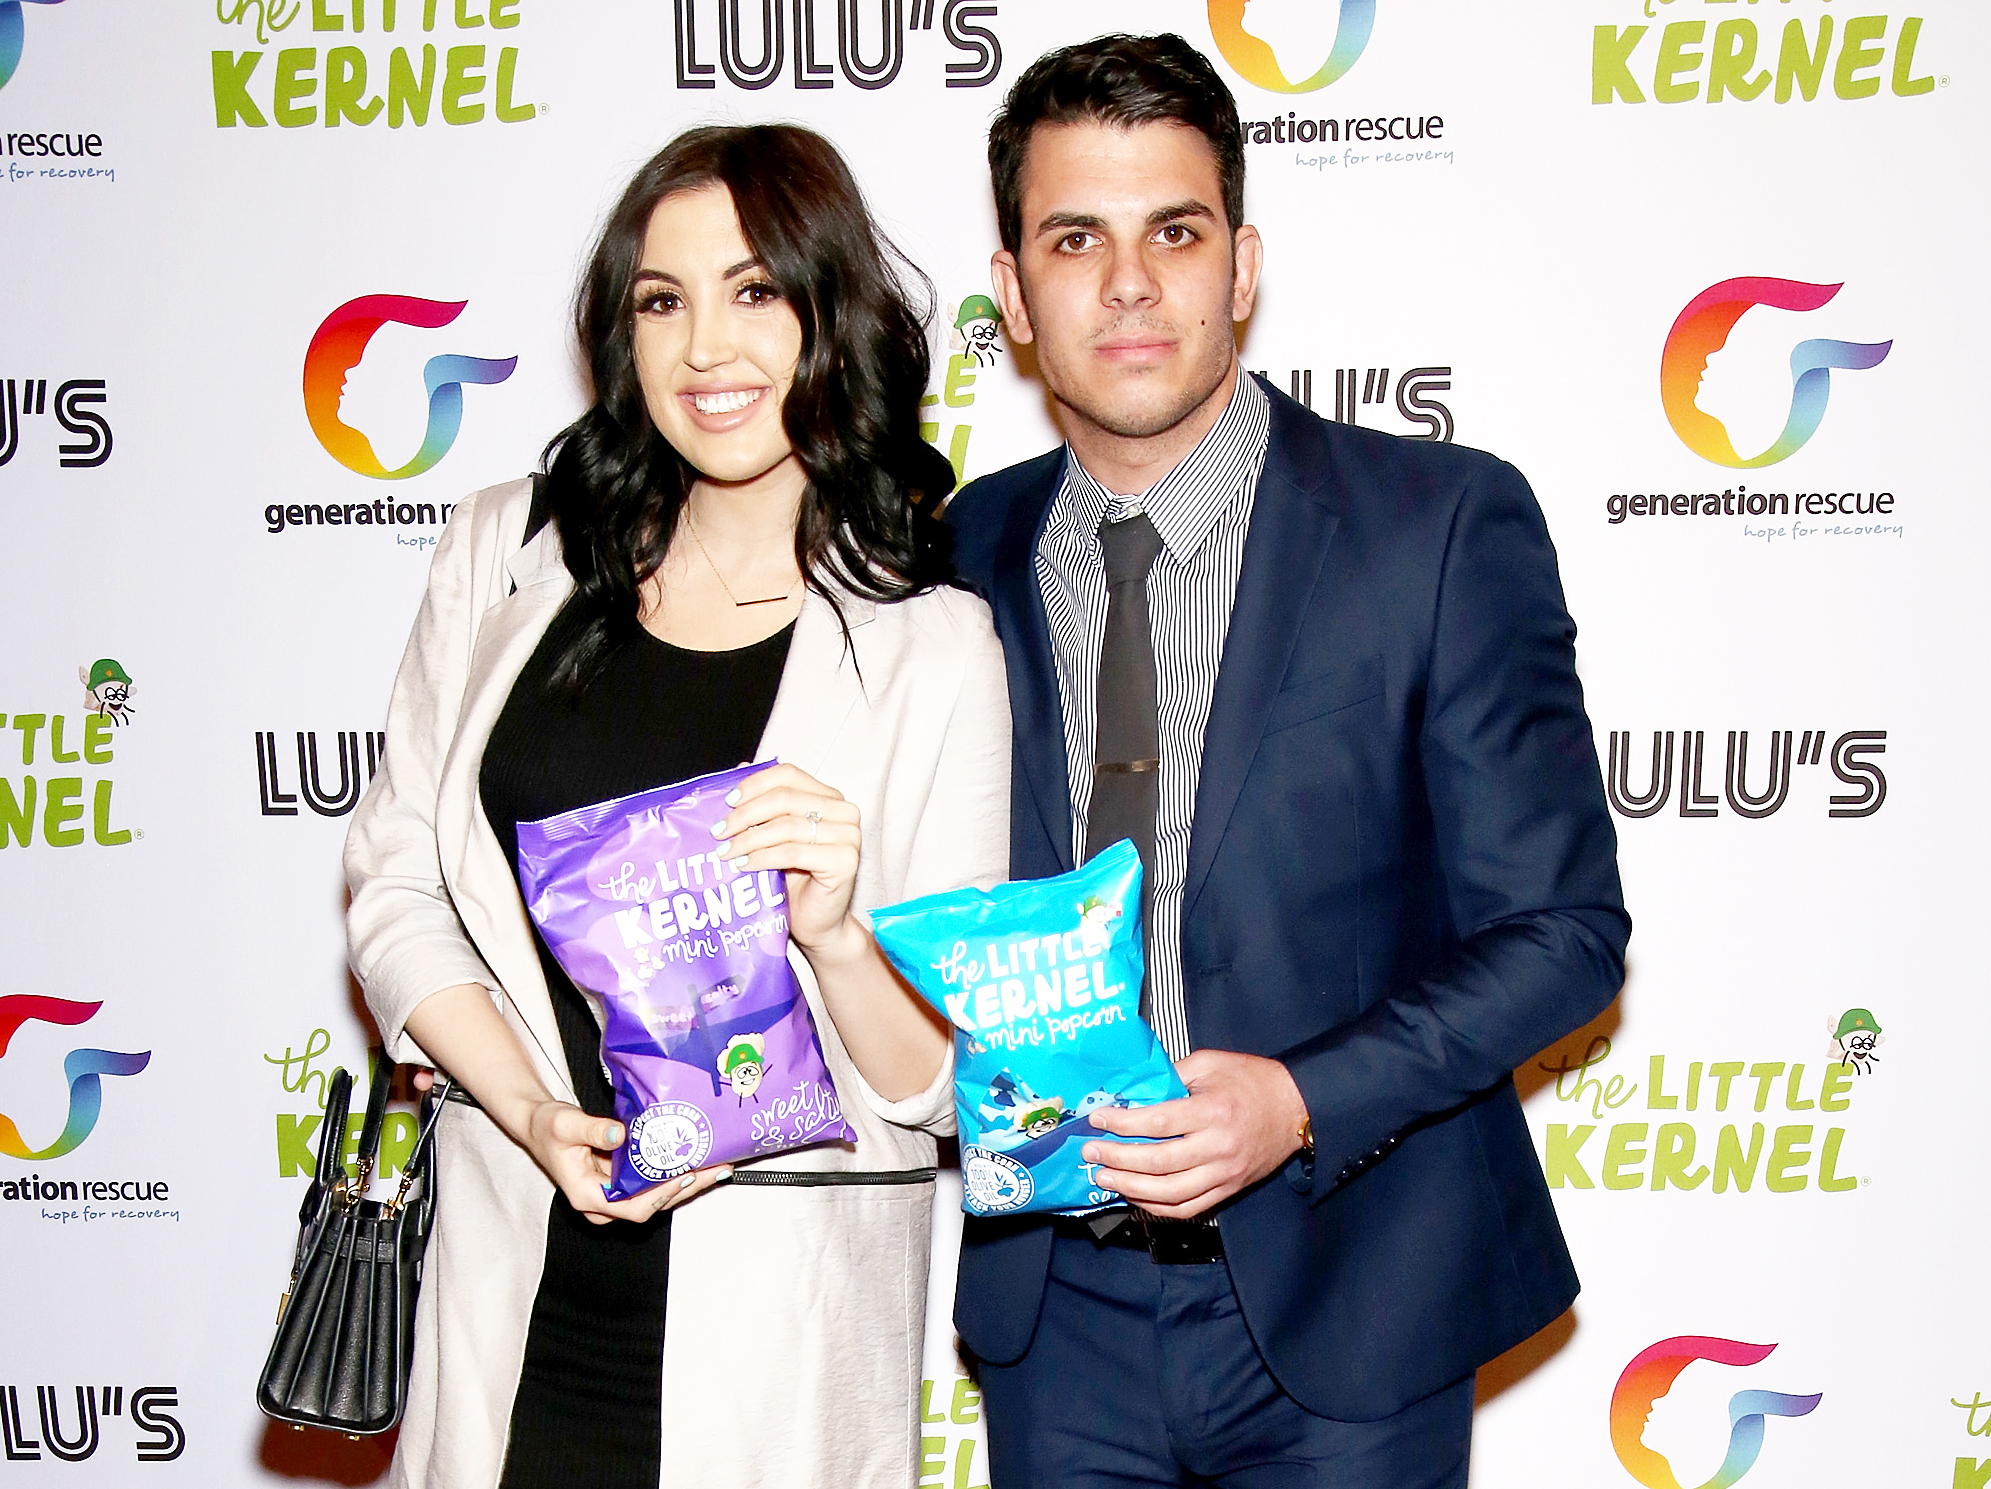 Ashlee Holmes Pete Malleo Married - Ashlee Holmes and Pete Malleo attend Chris Laurita's launch of 'The Little Kernel' mini-popcorn in Hoboken, New Jersey, on March 18, 2016.